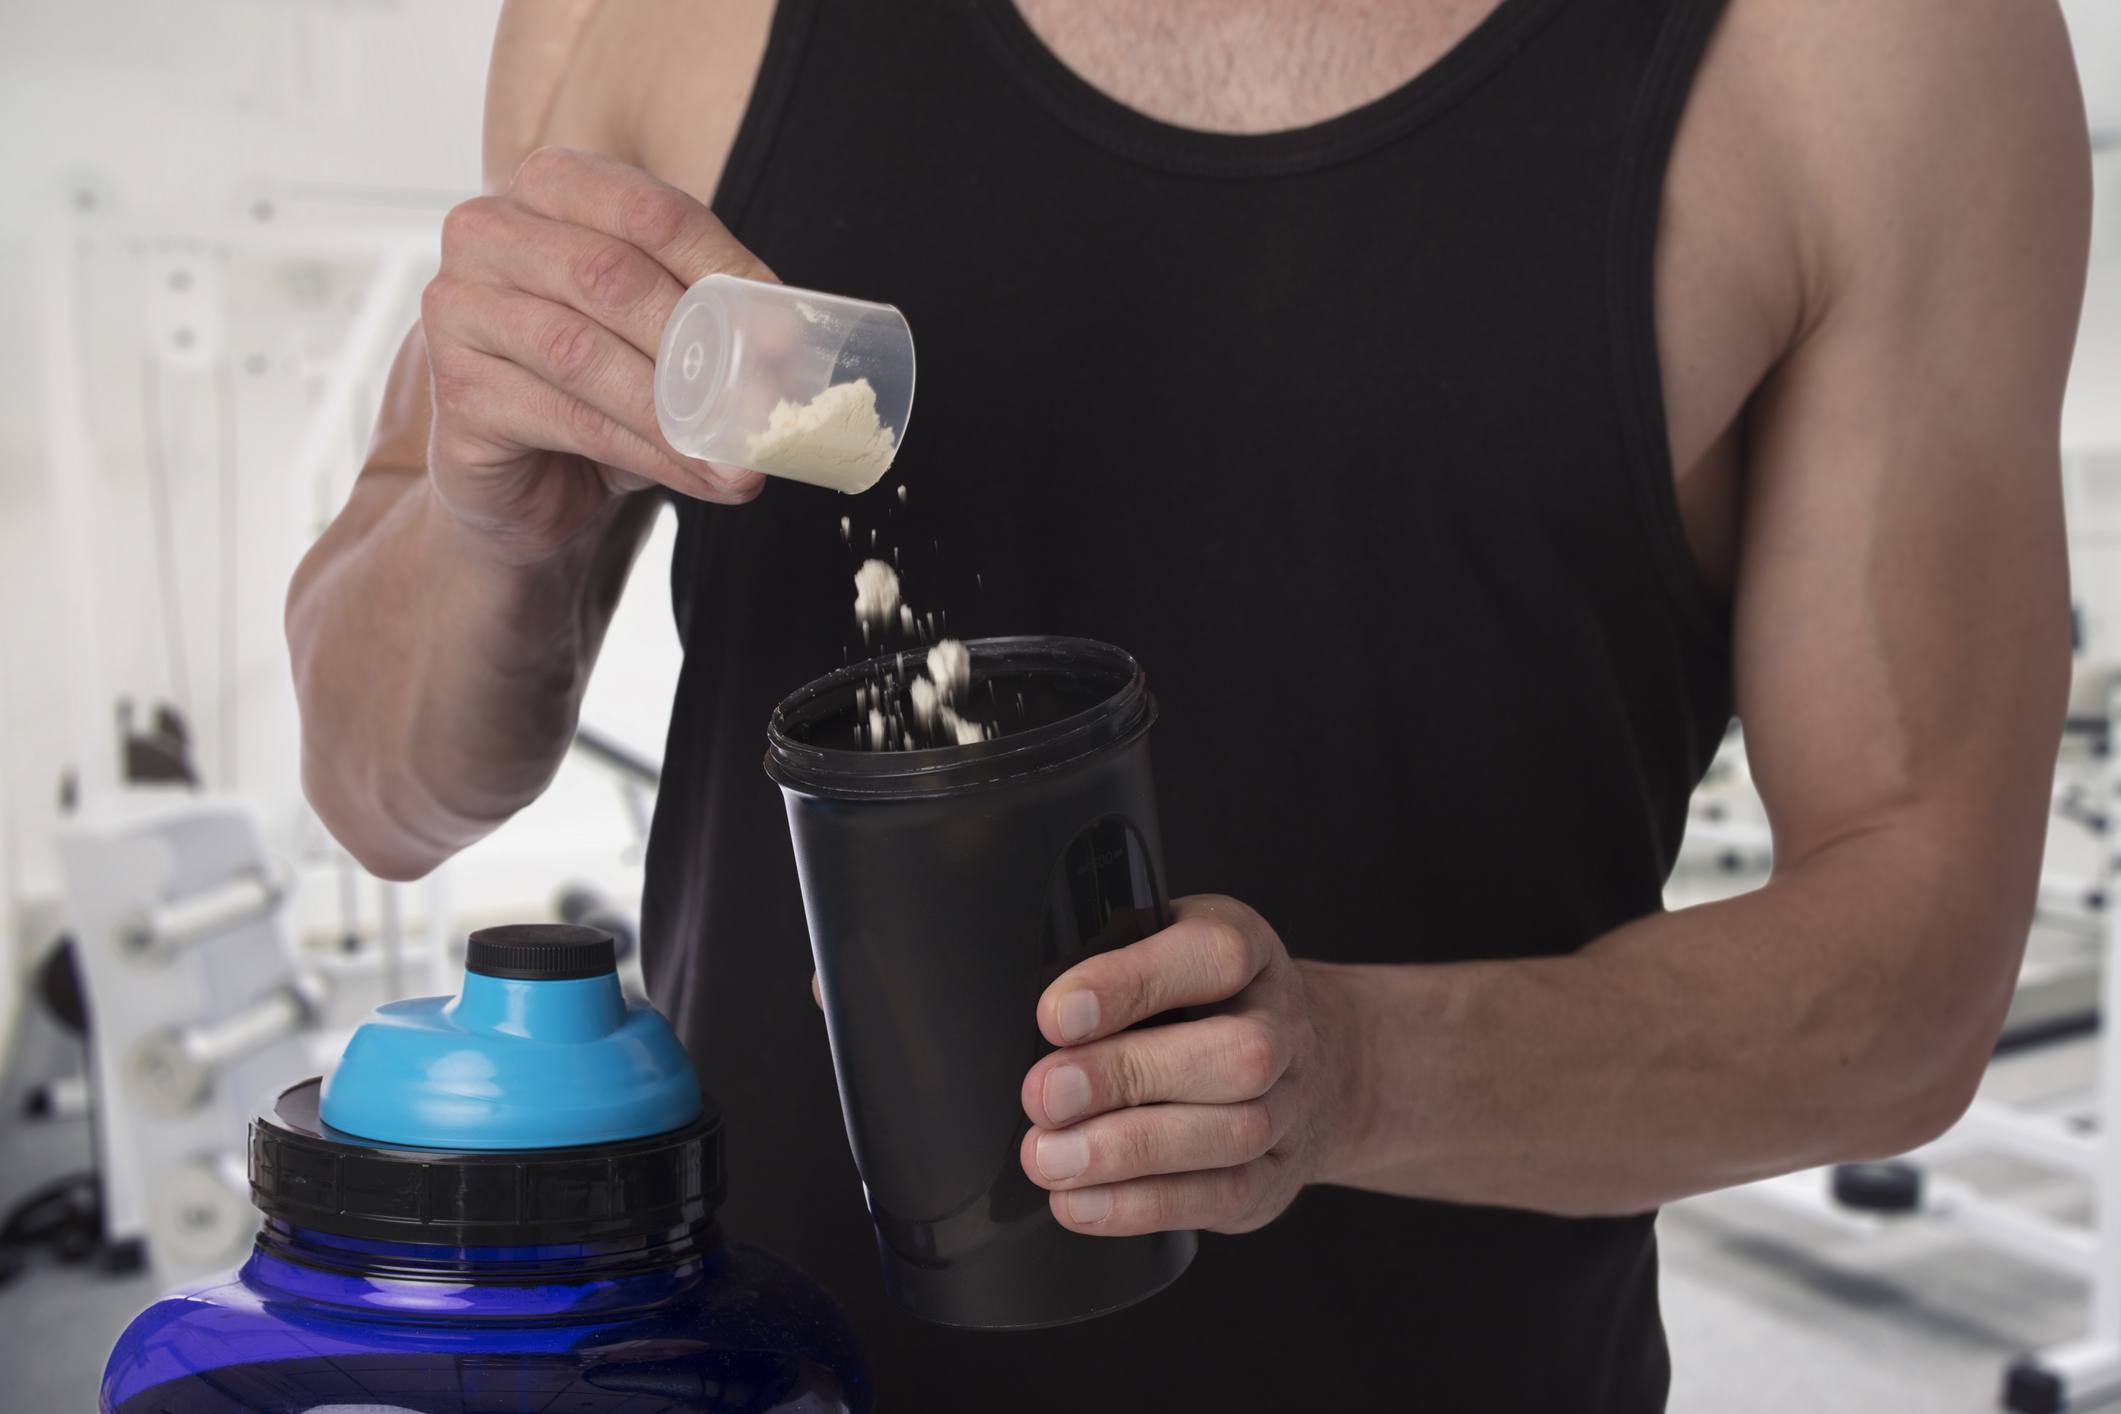 Man putting creatine powder into shaker cup at the gym